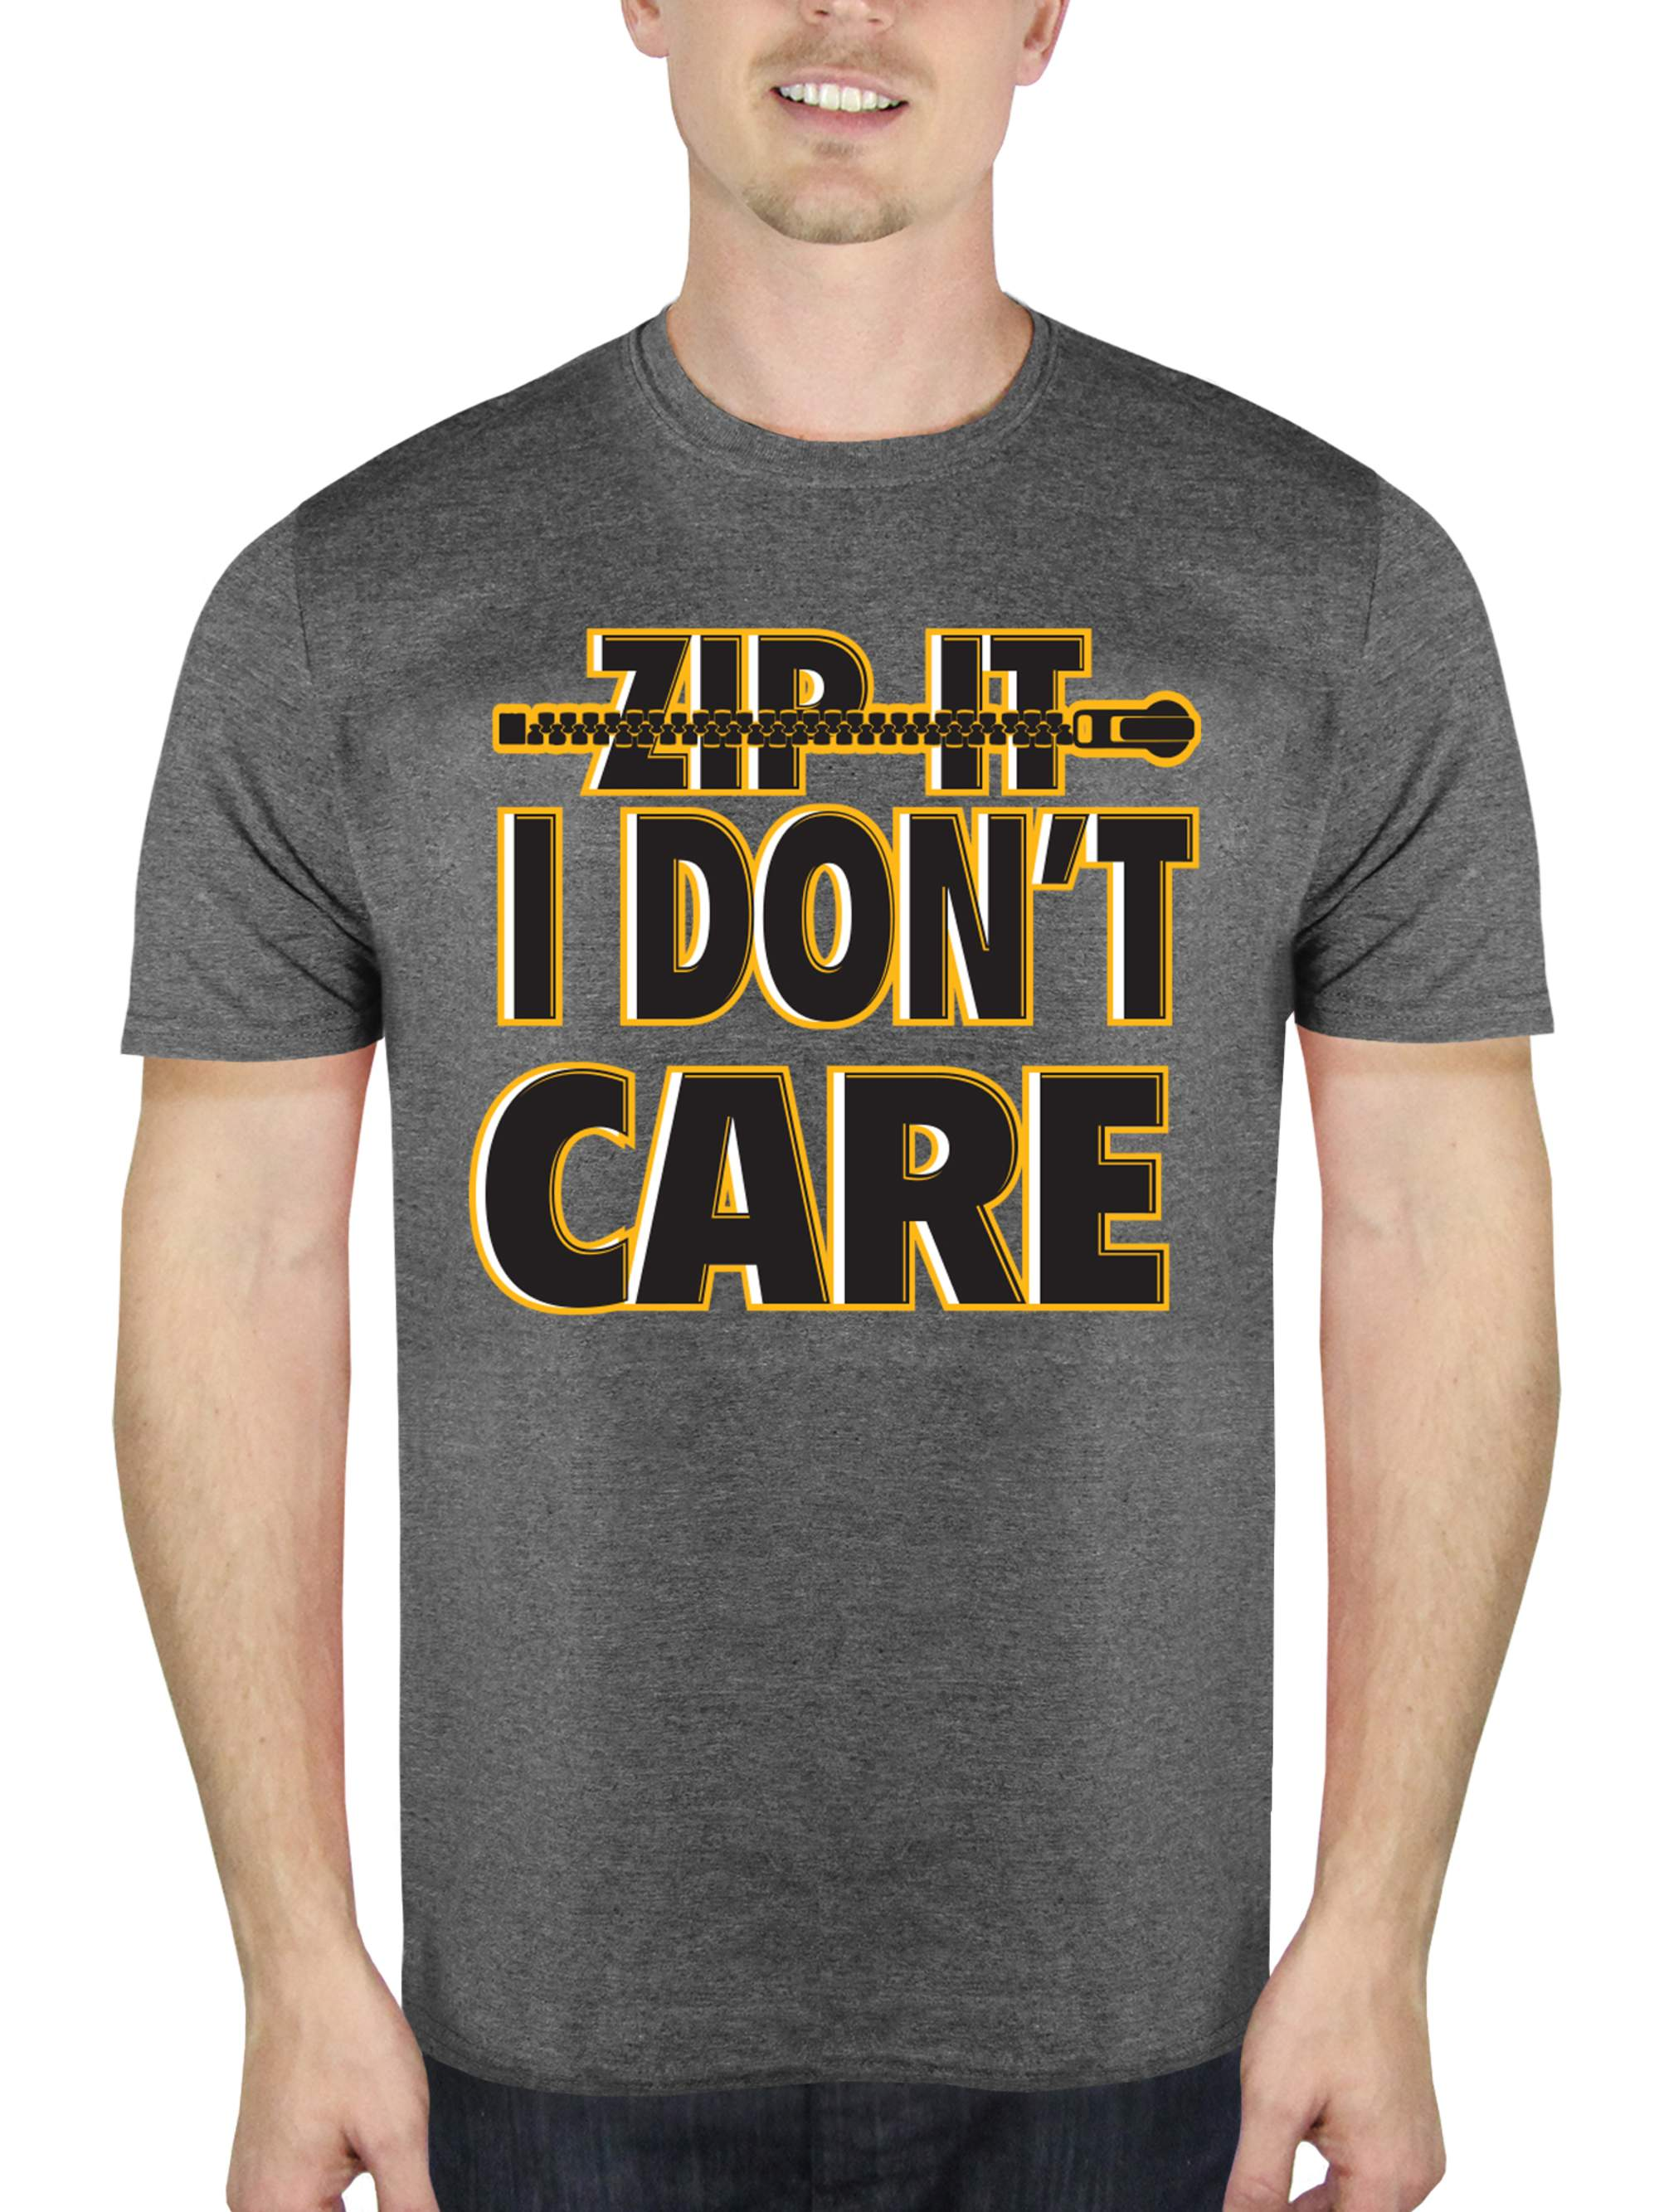 Zip It I Don't Care Attitude Funny Big Men's Graphic Charcoal T-Shirt